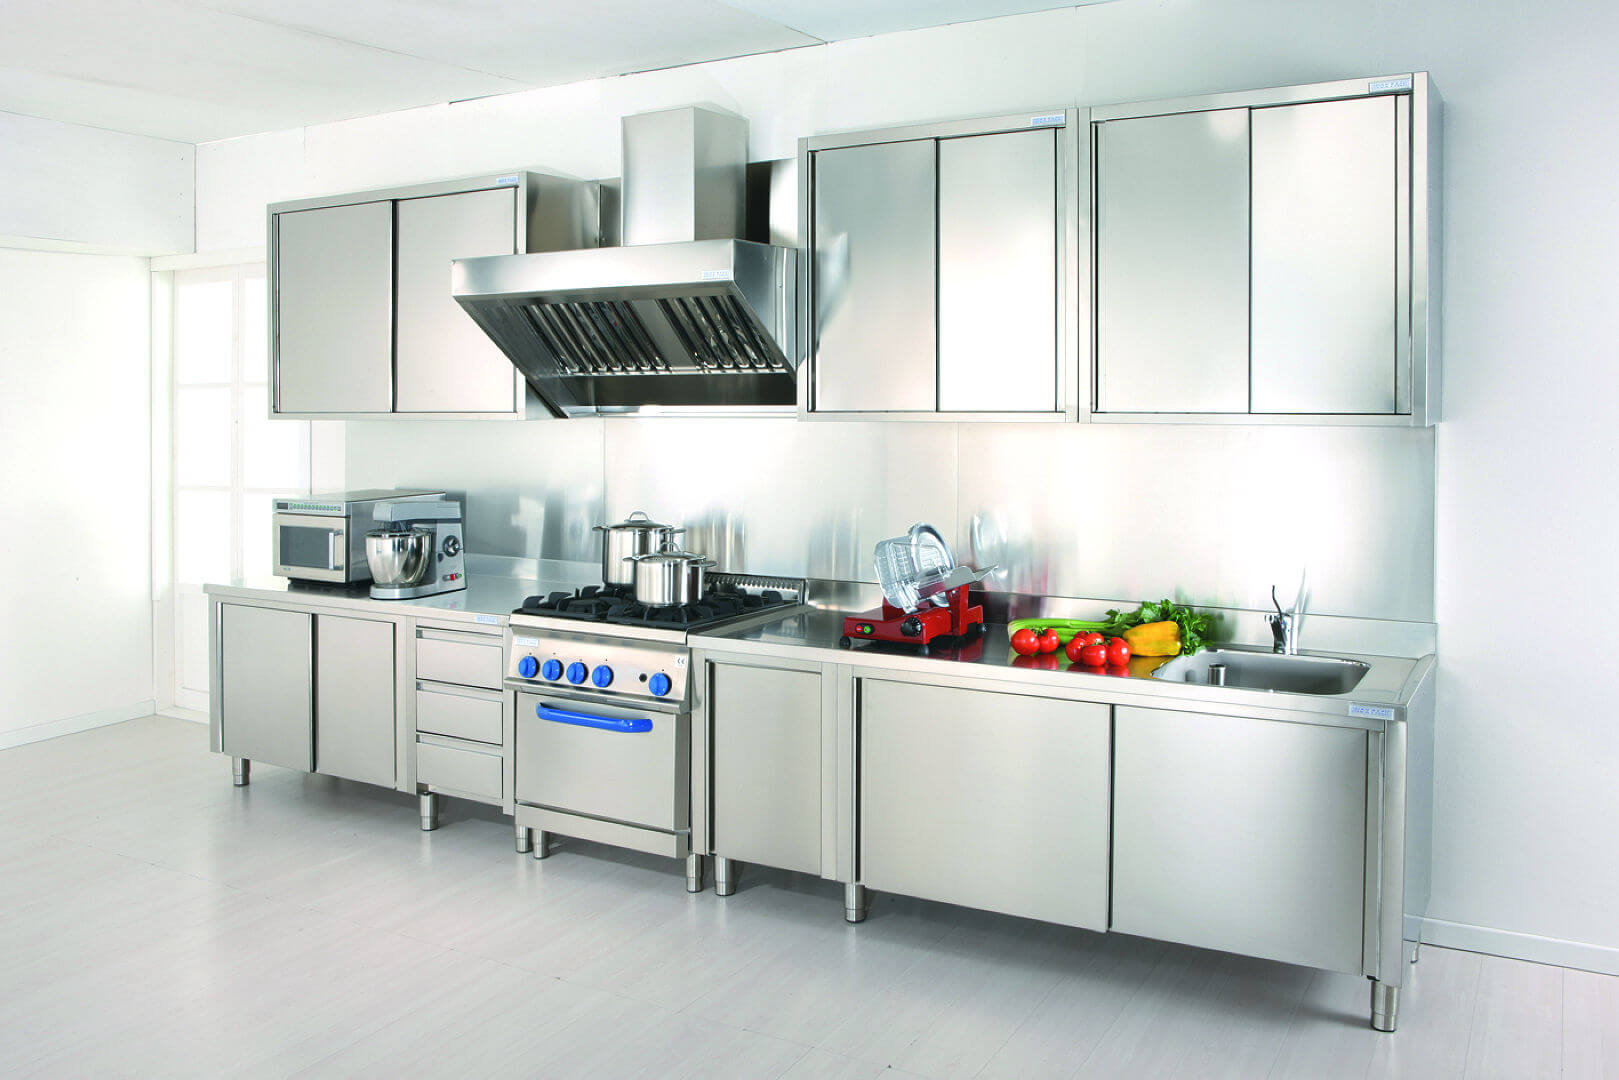 Grand gourmet chef arca cucine italy stainless steel kitchens - Cucine steel opinioni ...